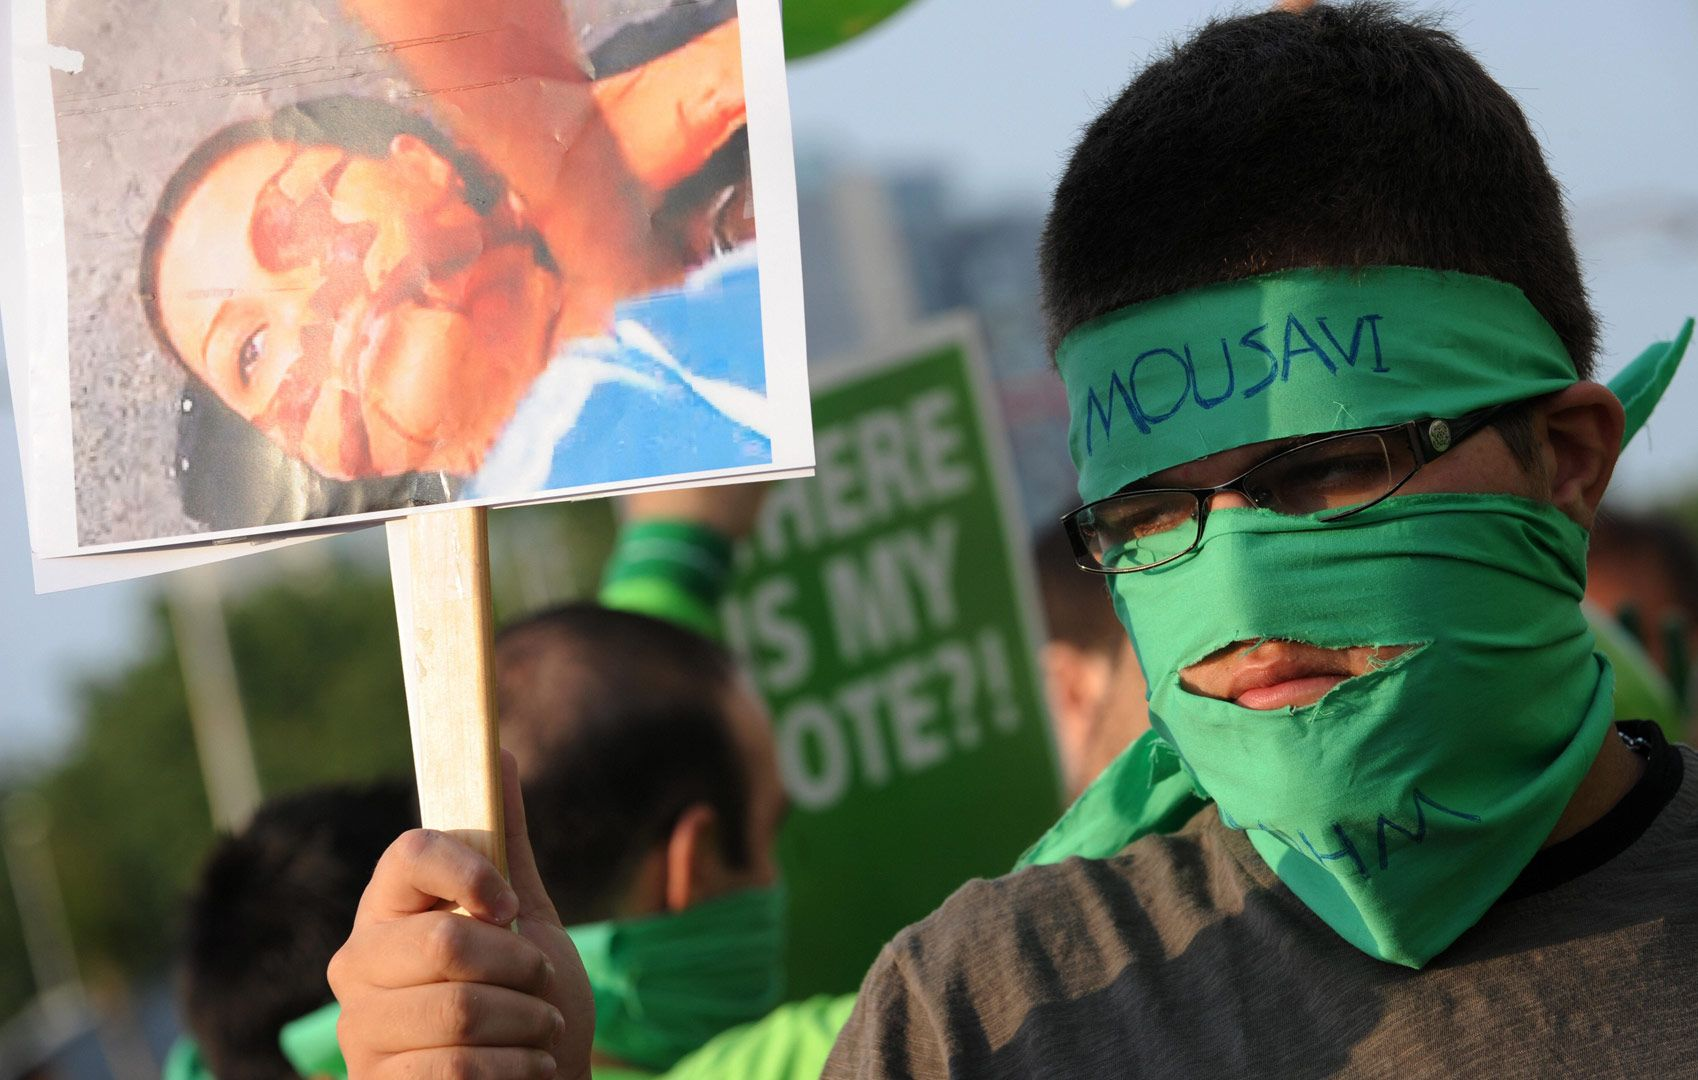 A Supporter Of Iranian Presidential Candidate Mir Hossein Mousavi Participates In A Protest Against The Election Results In I Iranian Women Neda In This Moment